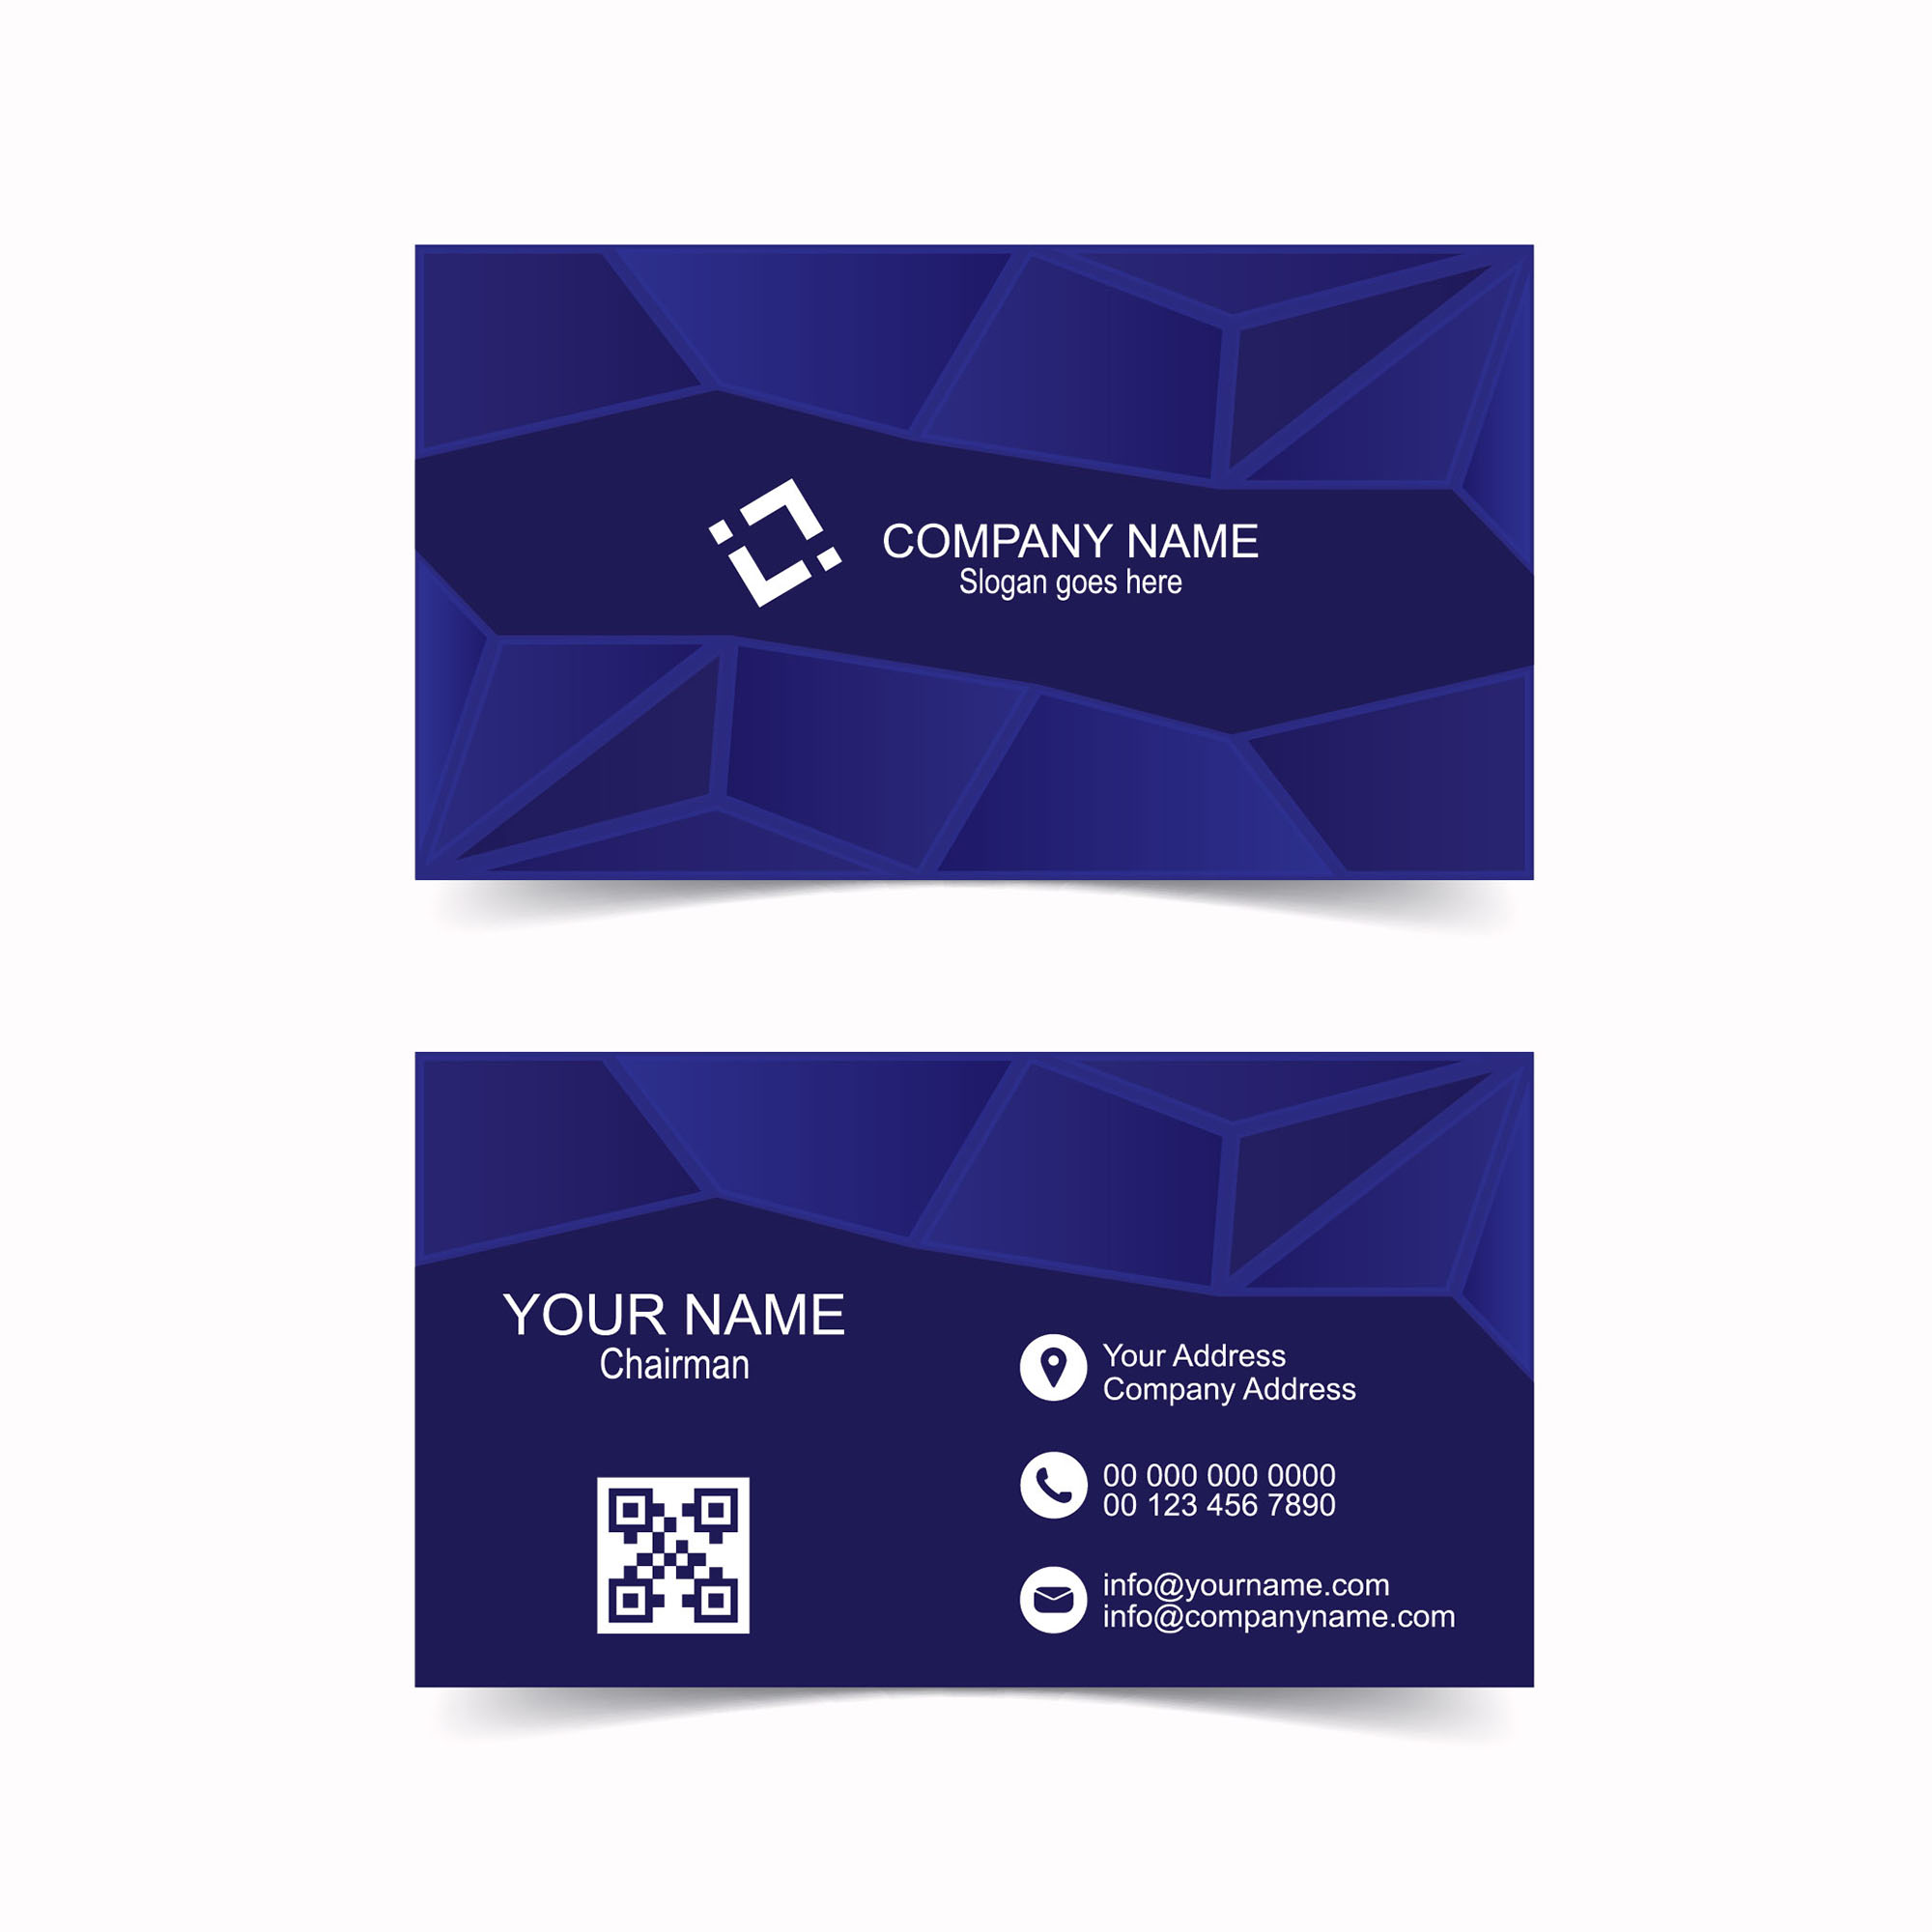 Abstract blue business card template free download wisxi business card business cards business card design business card template design templates cheaphphosting